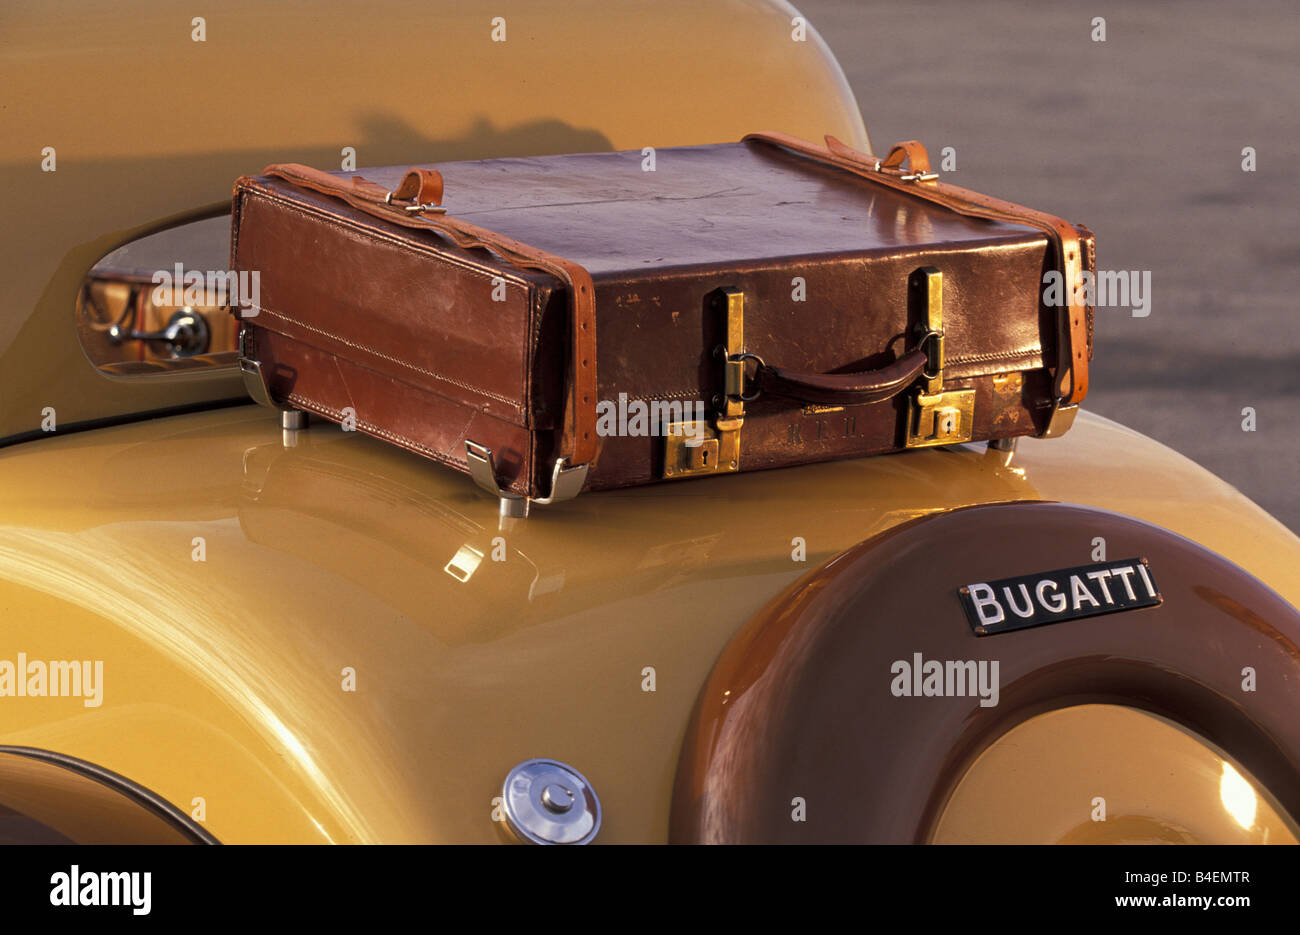 Car, Bugatti 57 Ventoux, vintage car, 1930s, thirties, approx. model year 1938,  detail, details, Kofferhalter, - Stock Image